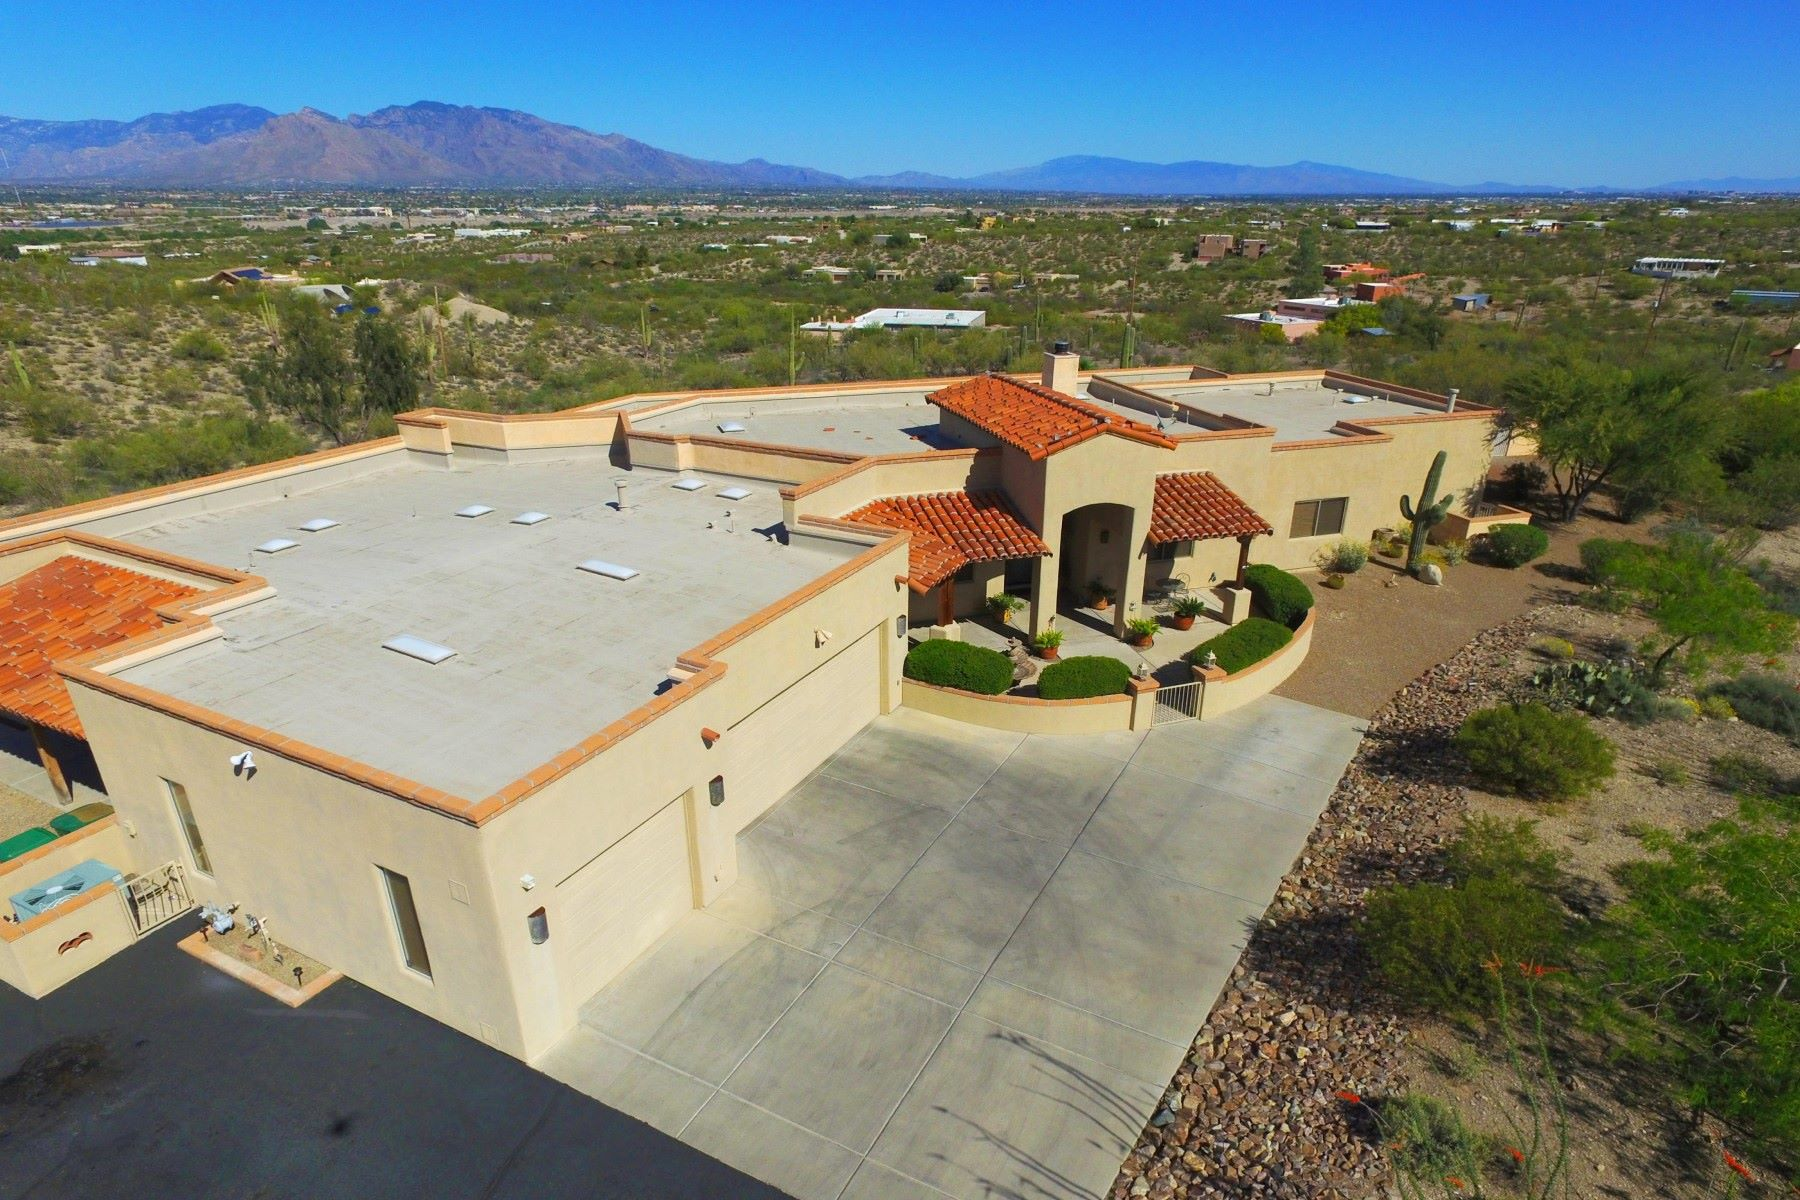 Single Family Home for Sale at Lovely Tucson home overlooking the city 5465 W Black Powder Place Tucson, Arizona, 85743 United States